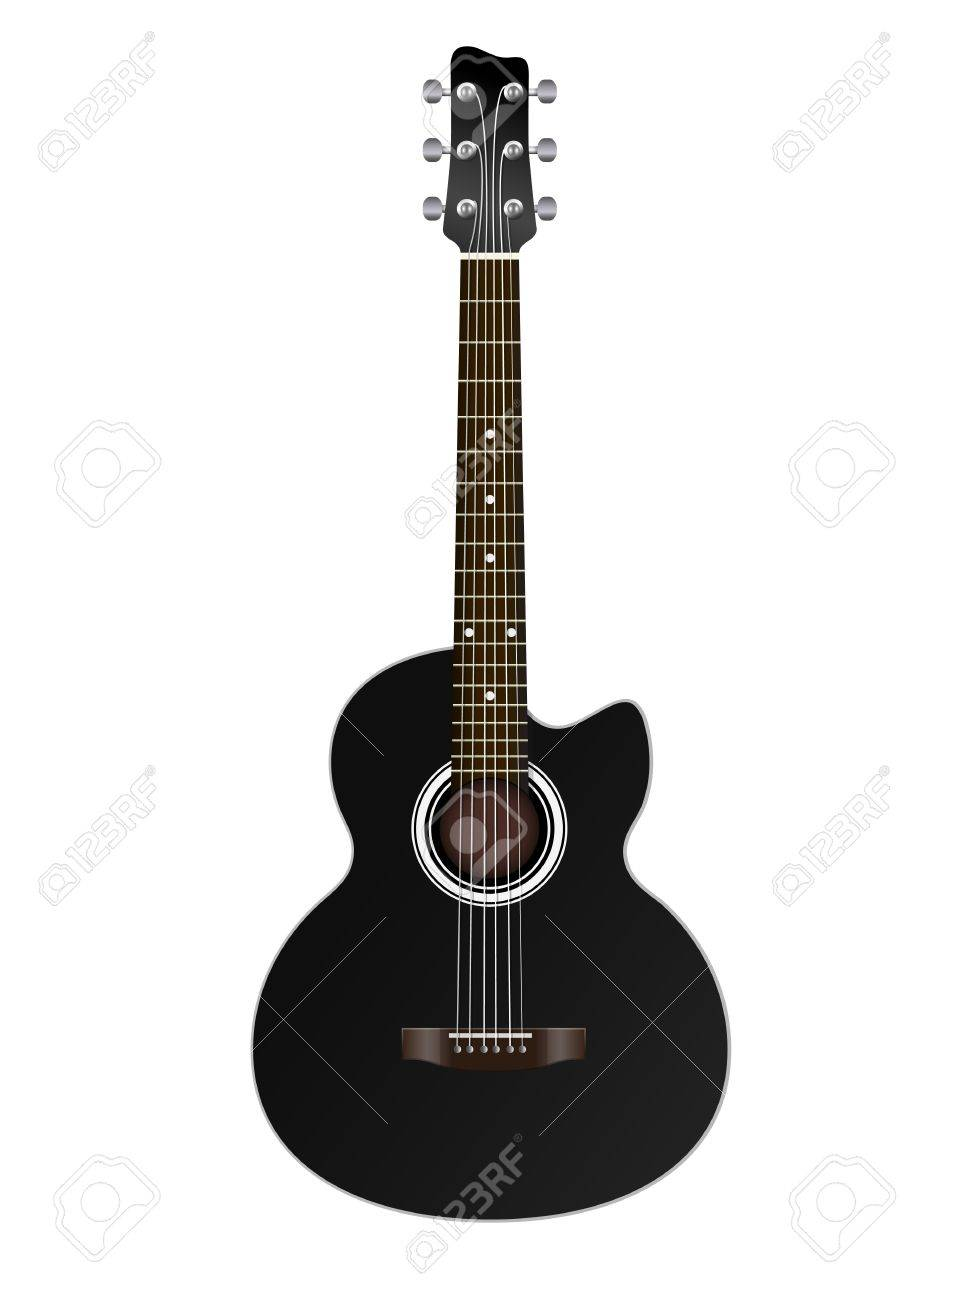 acoustic classic guitar illustration isolated on white background Stock Vector - 15352310